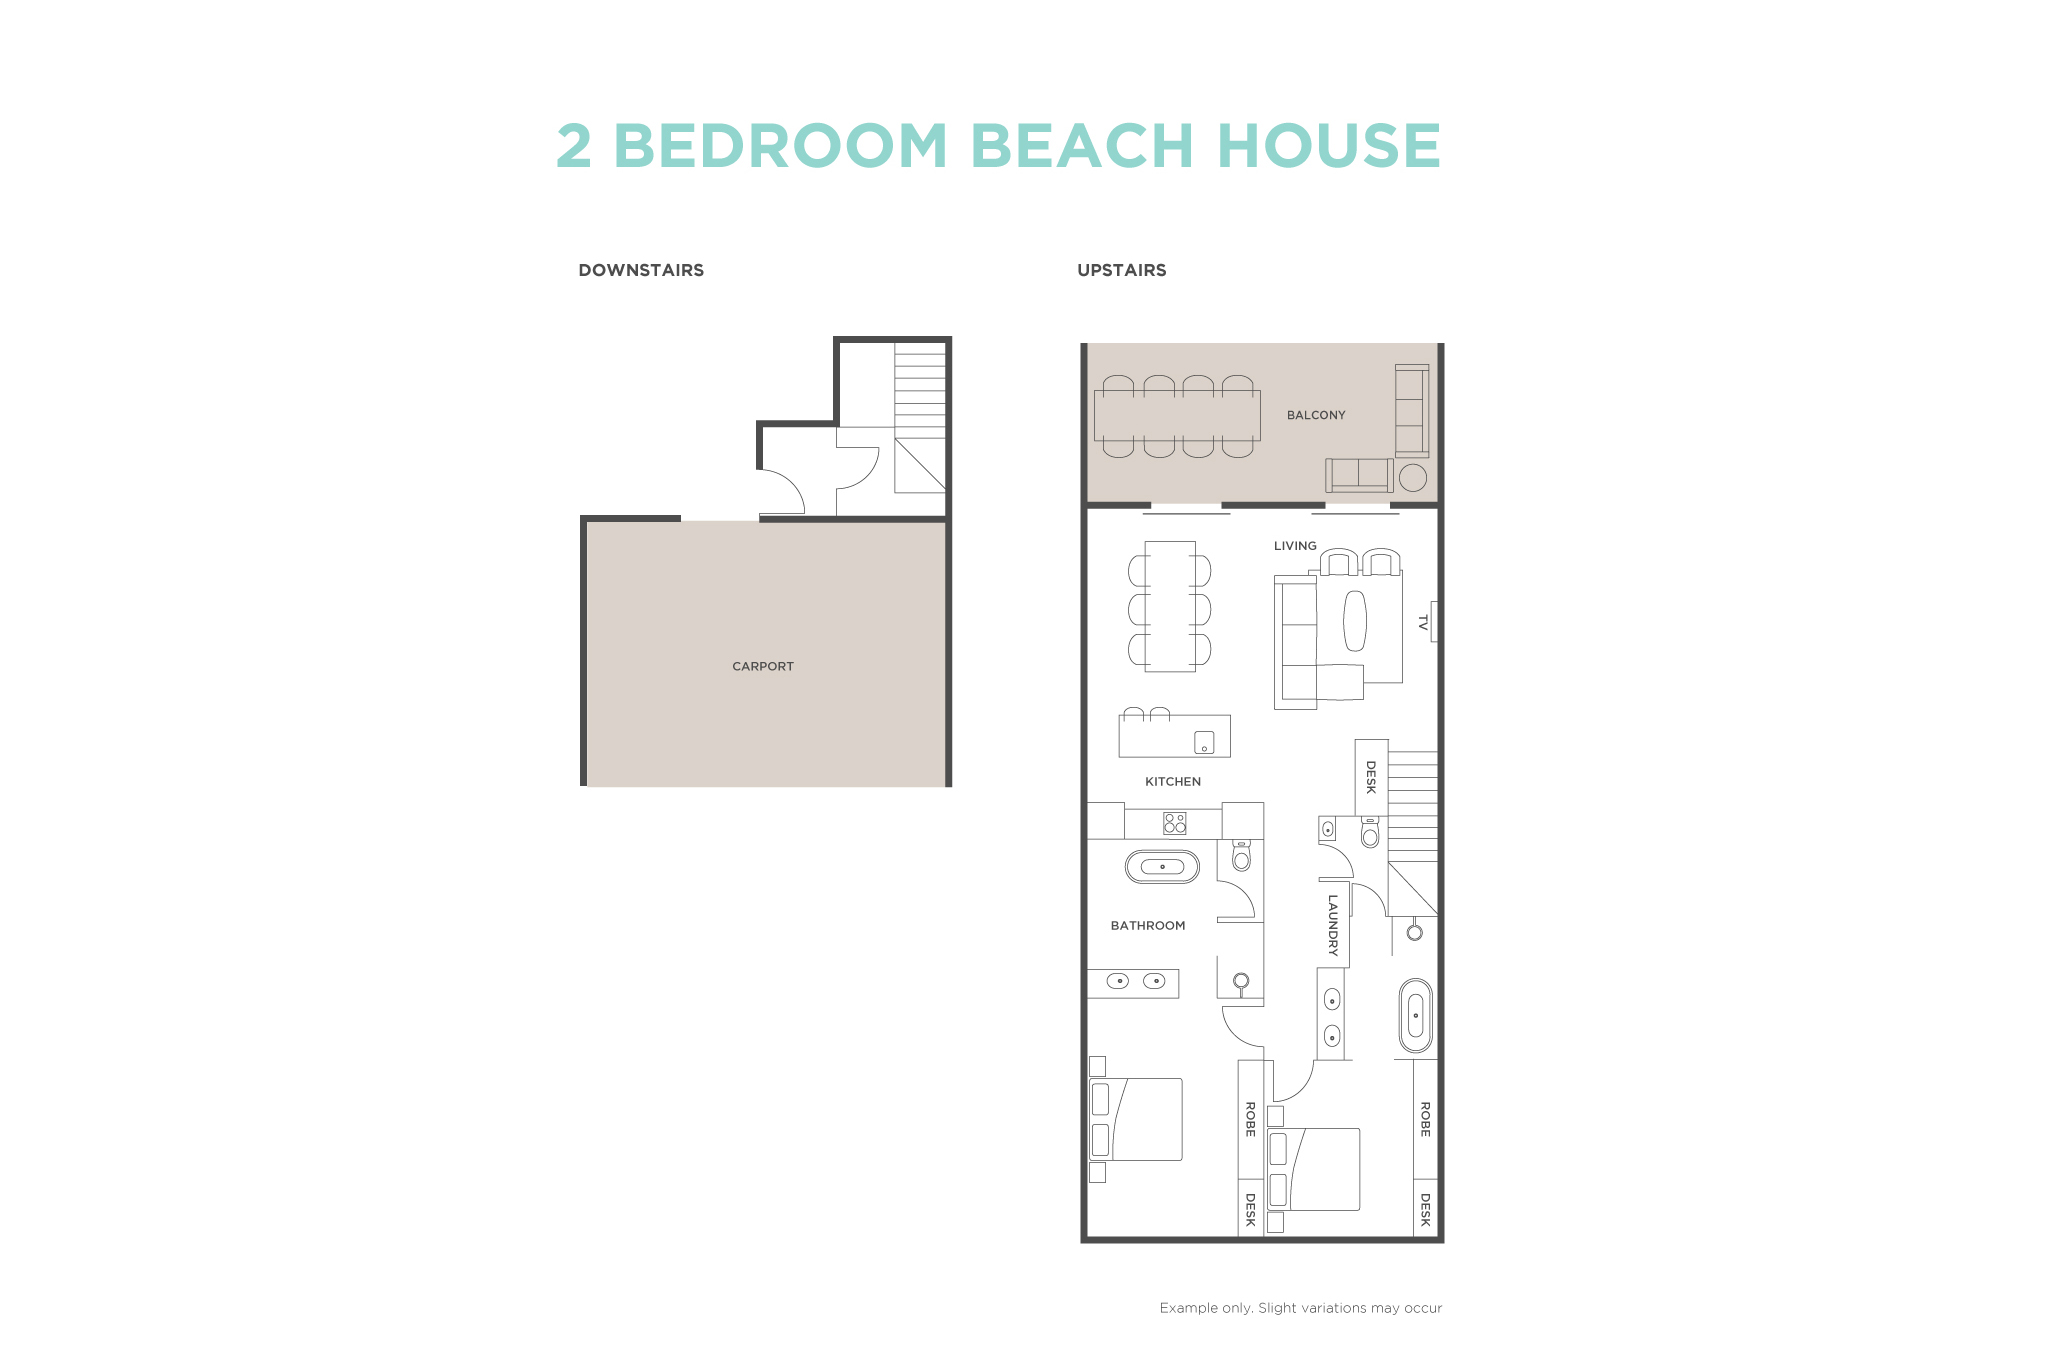 2 Bedroom Beach House floor plan